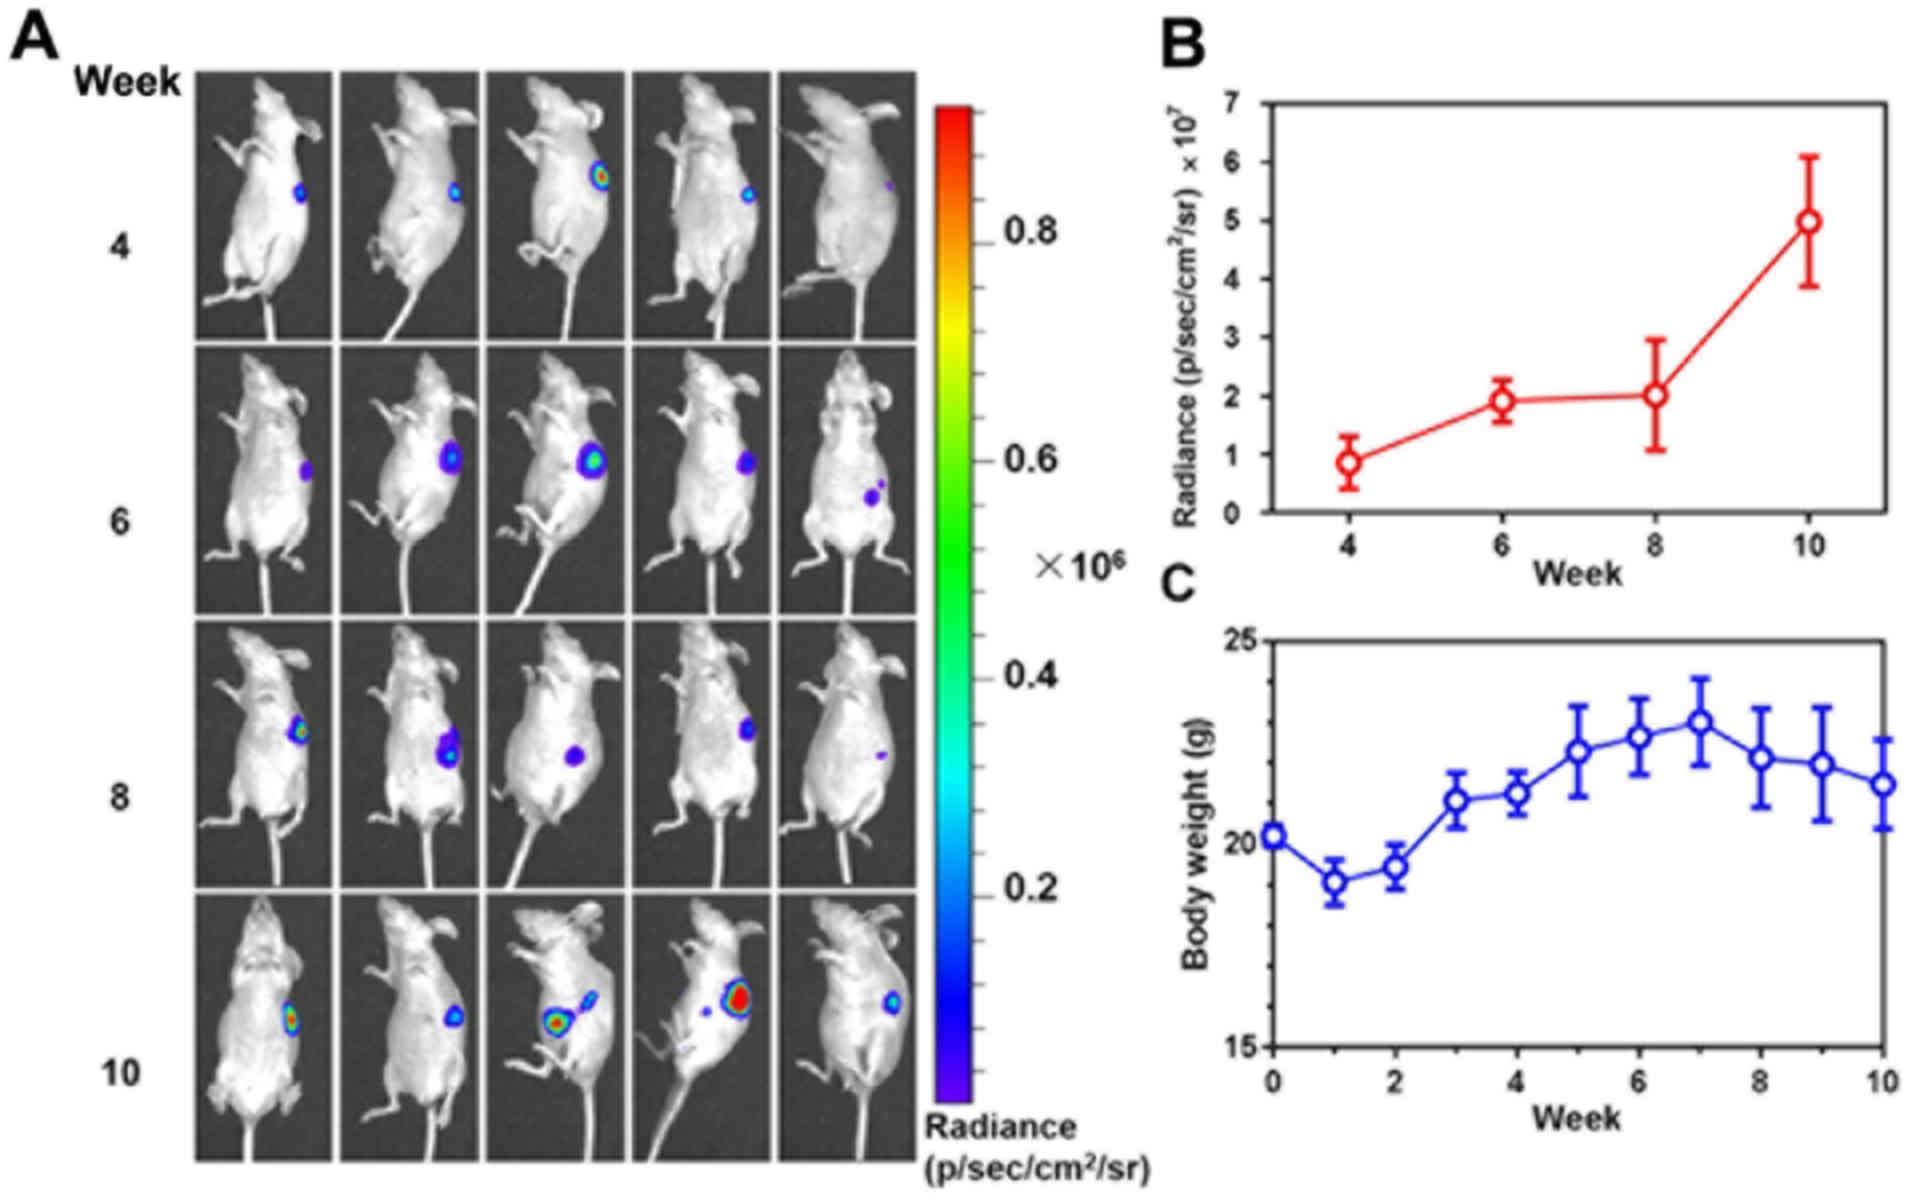 Characterization Of An Orthotopic Gastric Cancer Mouse Model With Lymph Node And Organ Metastases Using Bioluminescence Imaging Corrigendum In 10 3892 Ol 2020 11860